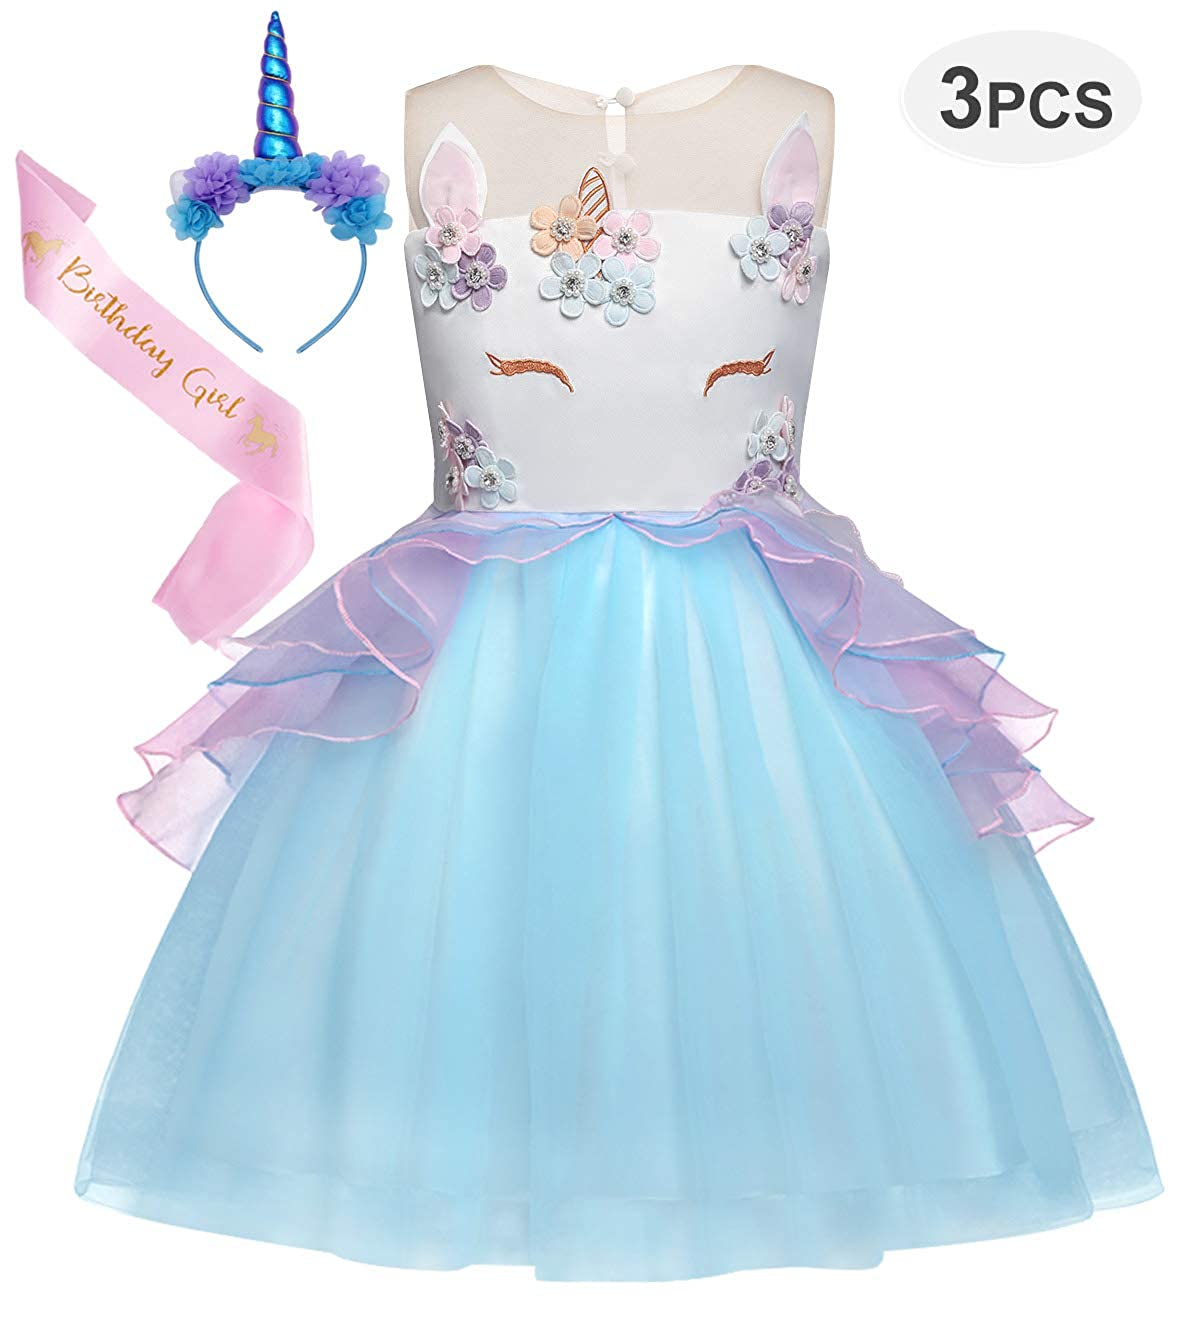 d2800ec7a4e61 HenzWorld Flower Girls Unicorn Costume Pageant Princess Party Dress  Birthday Halloween Cosplay Outfits Accessories